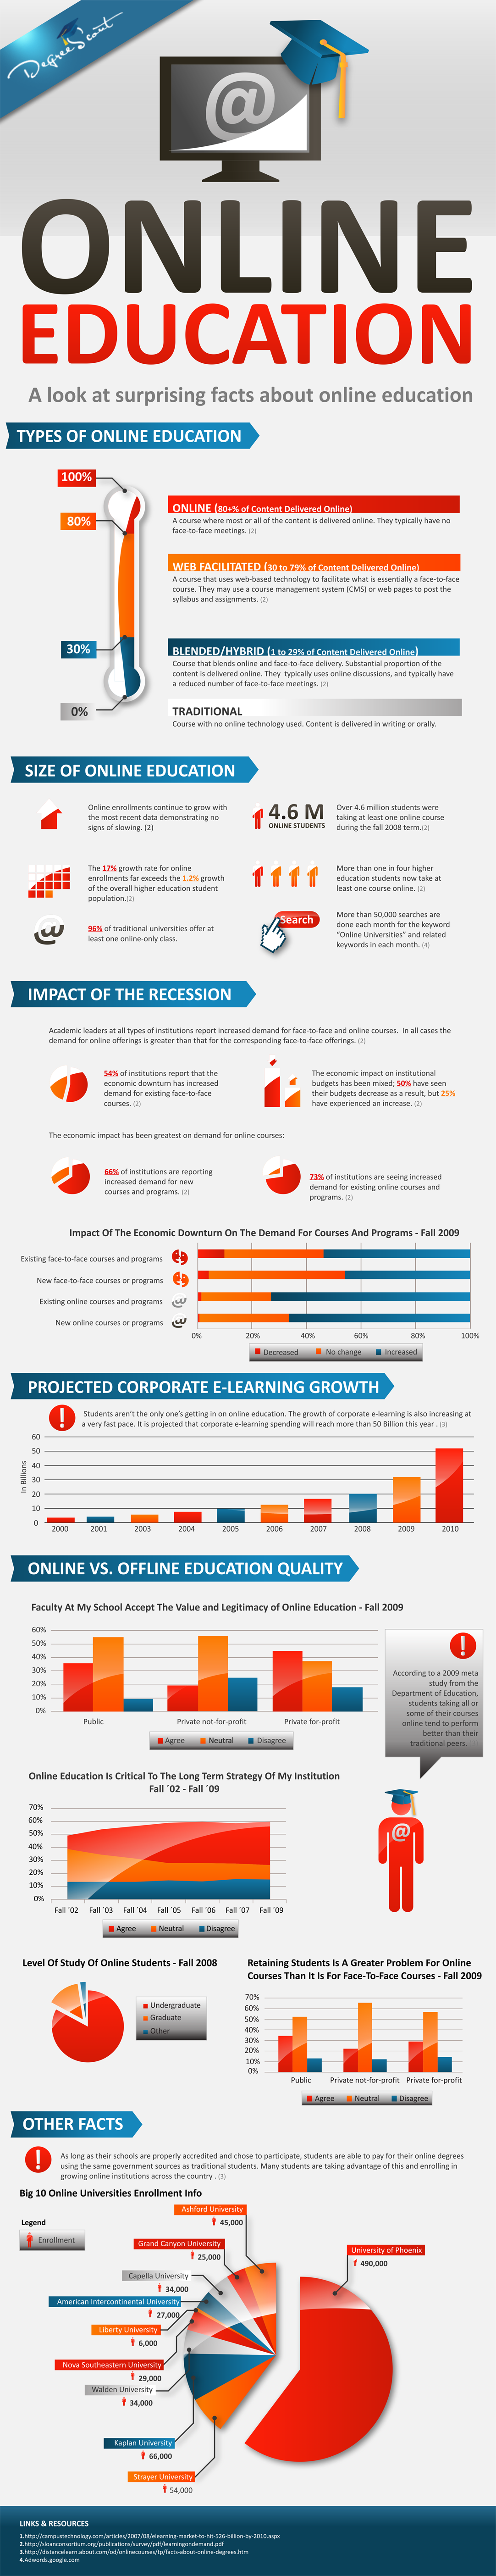 Online Education Infographic: Facts About Going to College Online